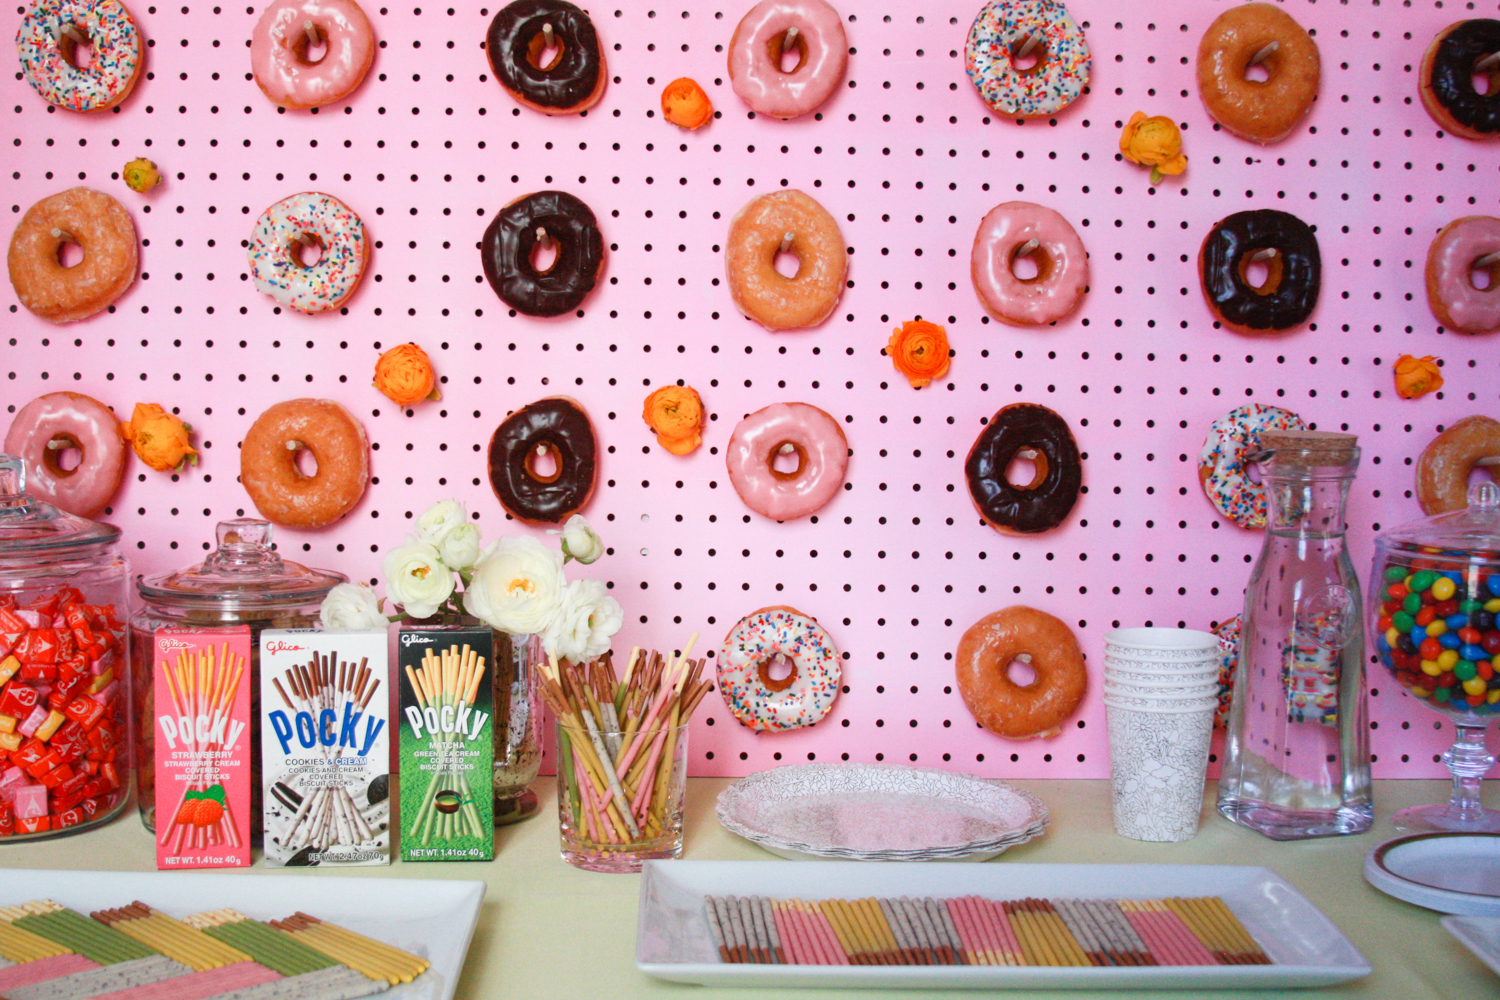 Seriously, how cute is this dessert bar?!